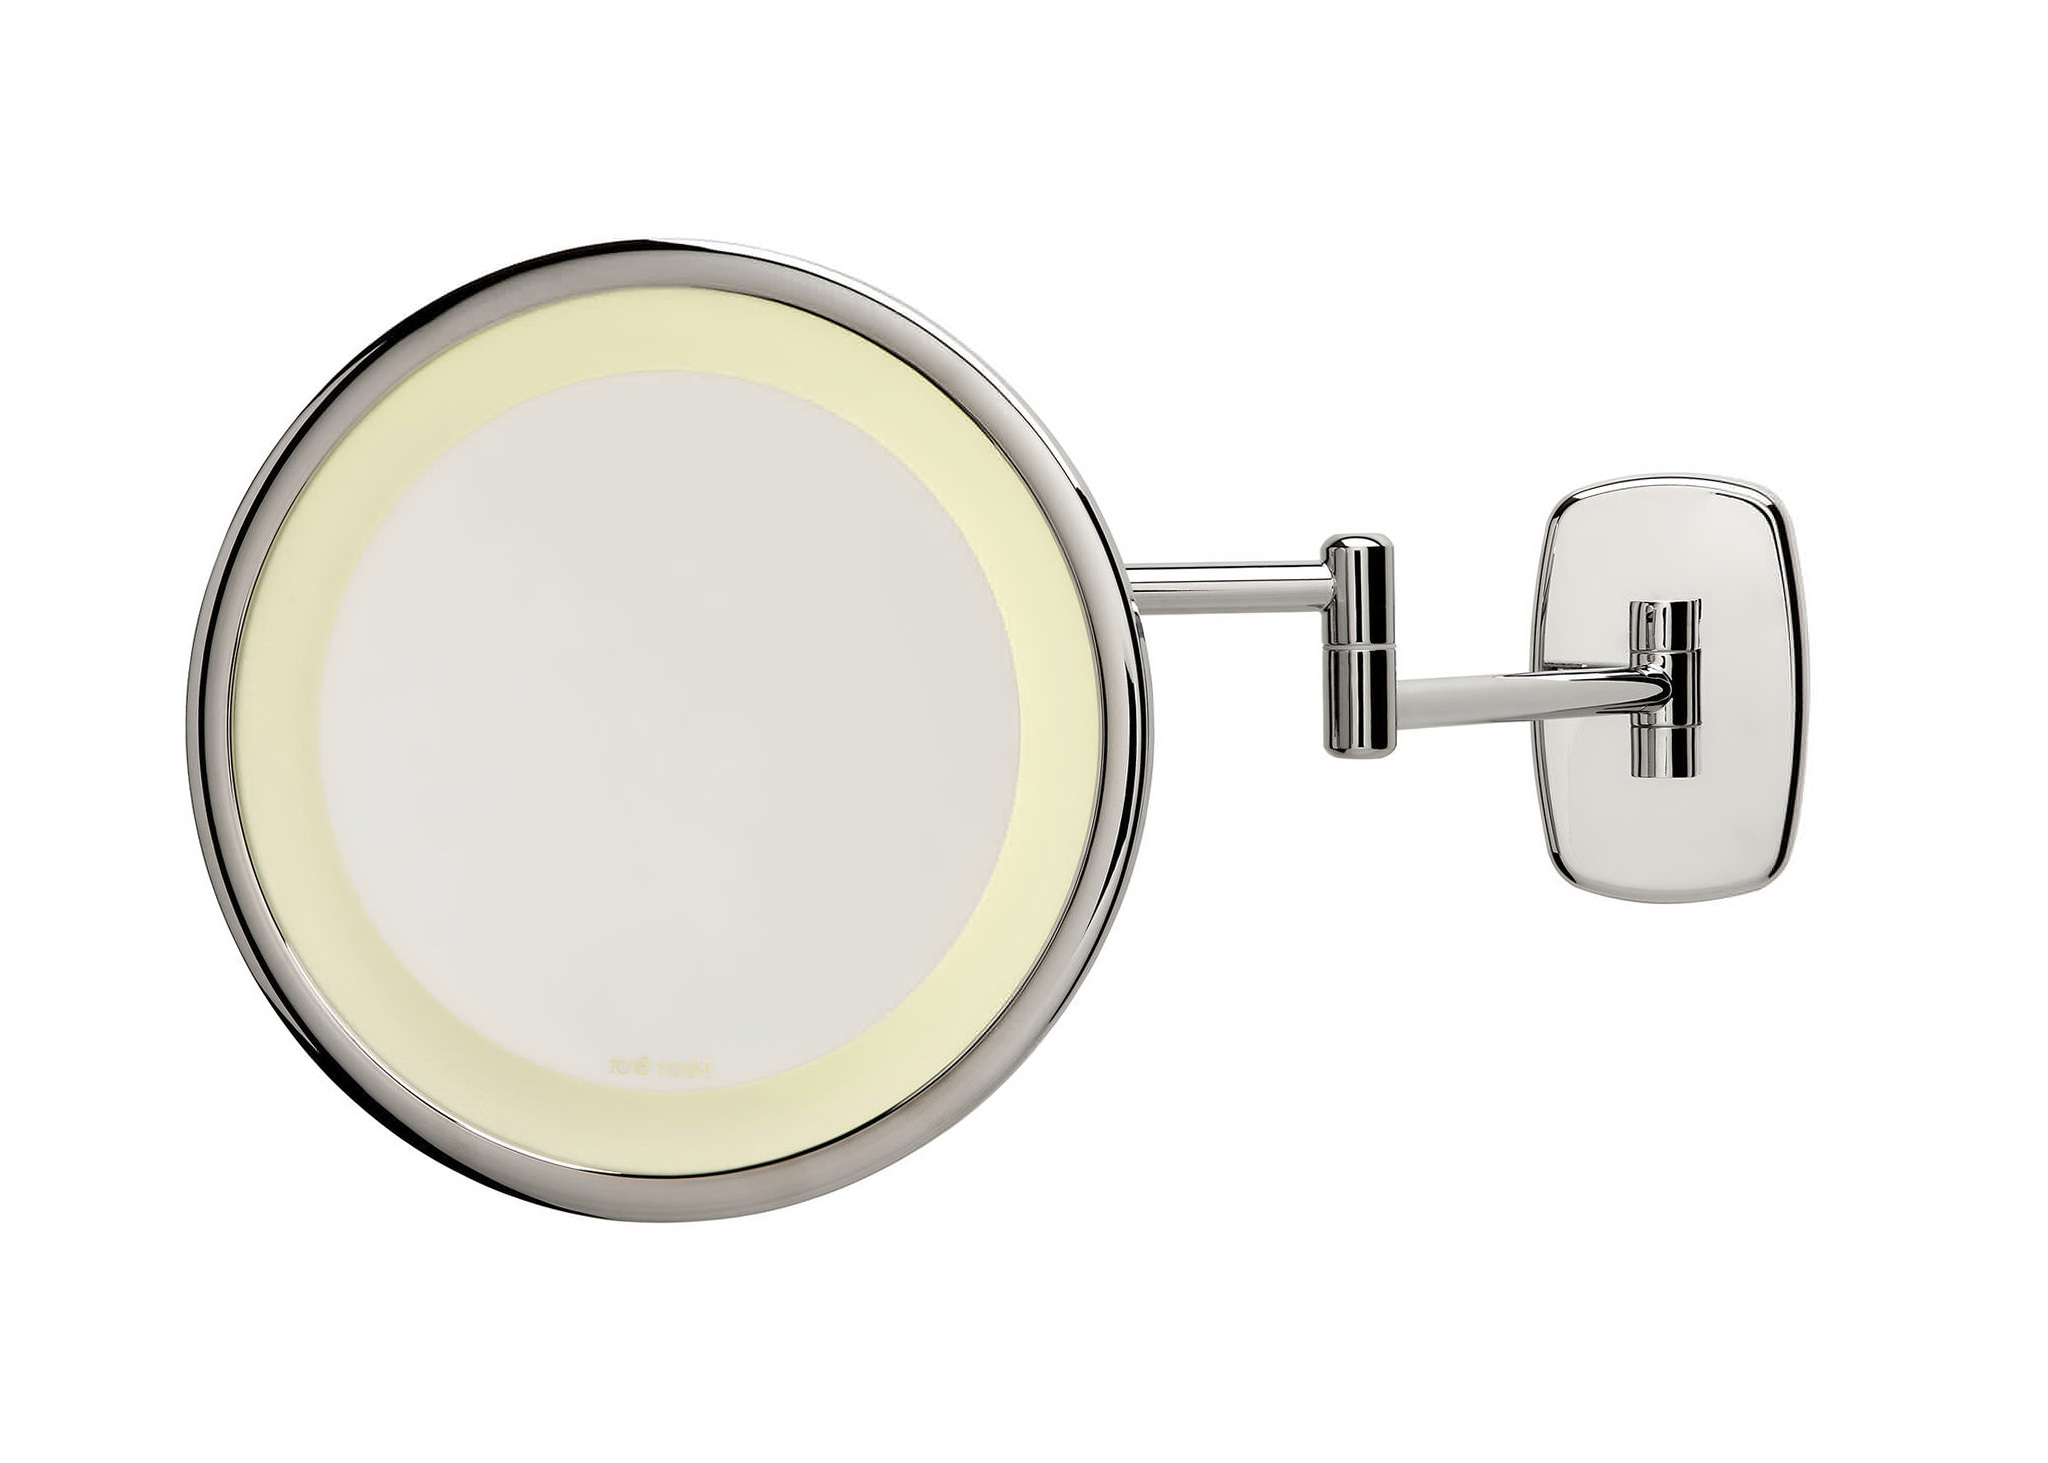 Lighted Magnifying Makeup Mirror Oil Rubbed Bronze